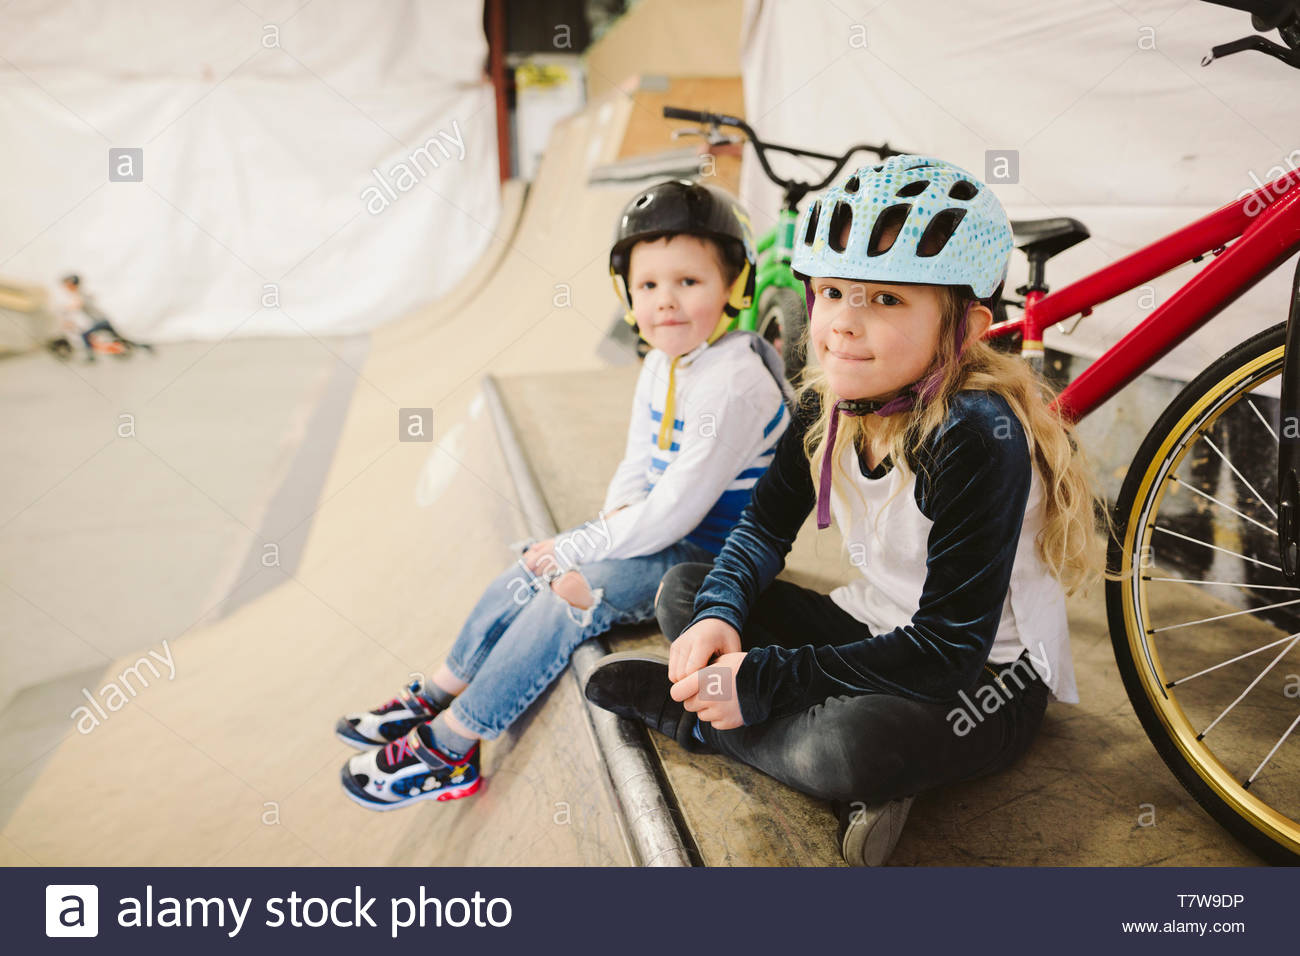 Portrait brother and sister with bmx bikes sitting at top of ramp at indoor skate park - Stock Image